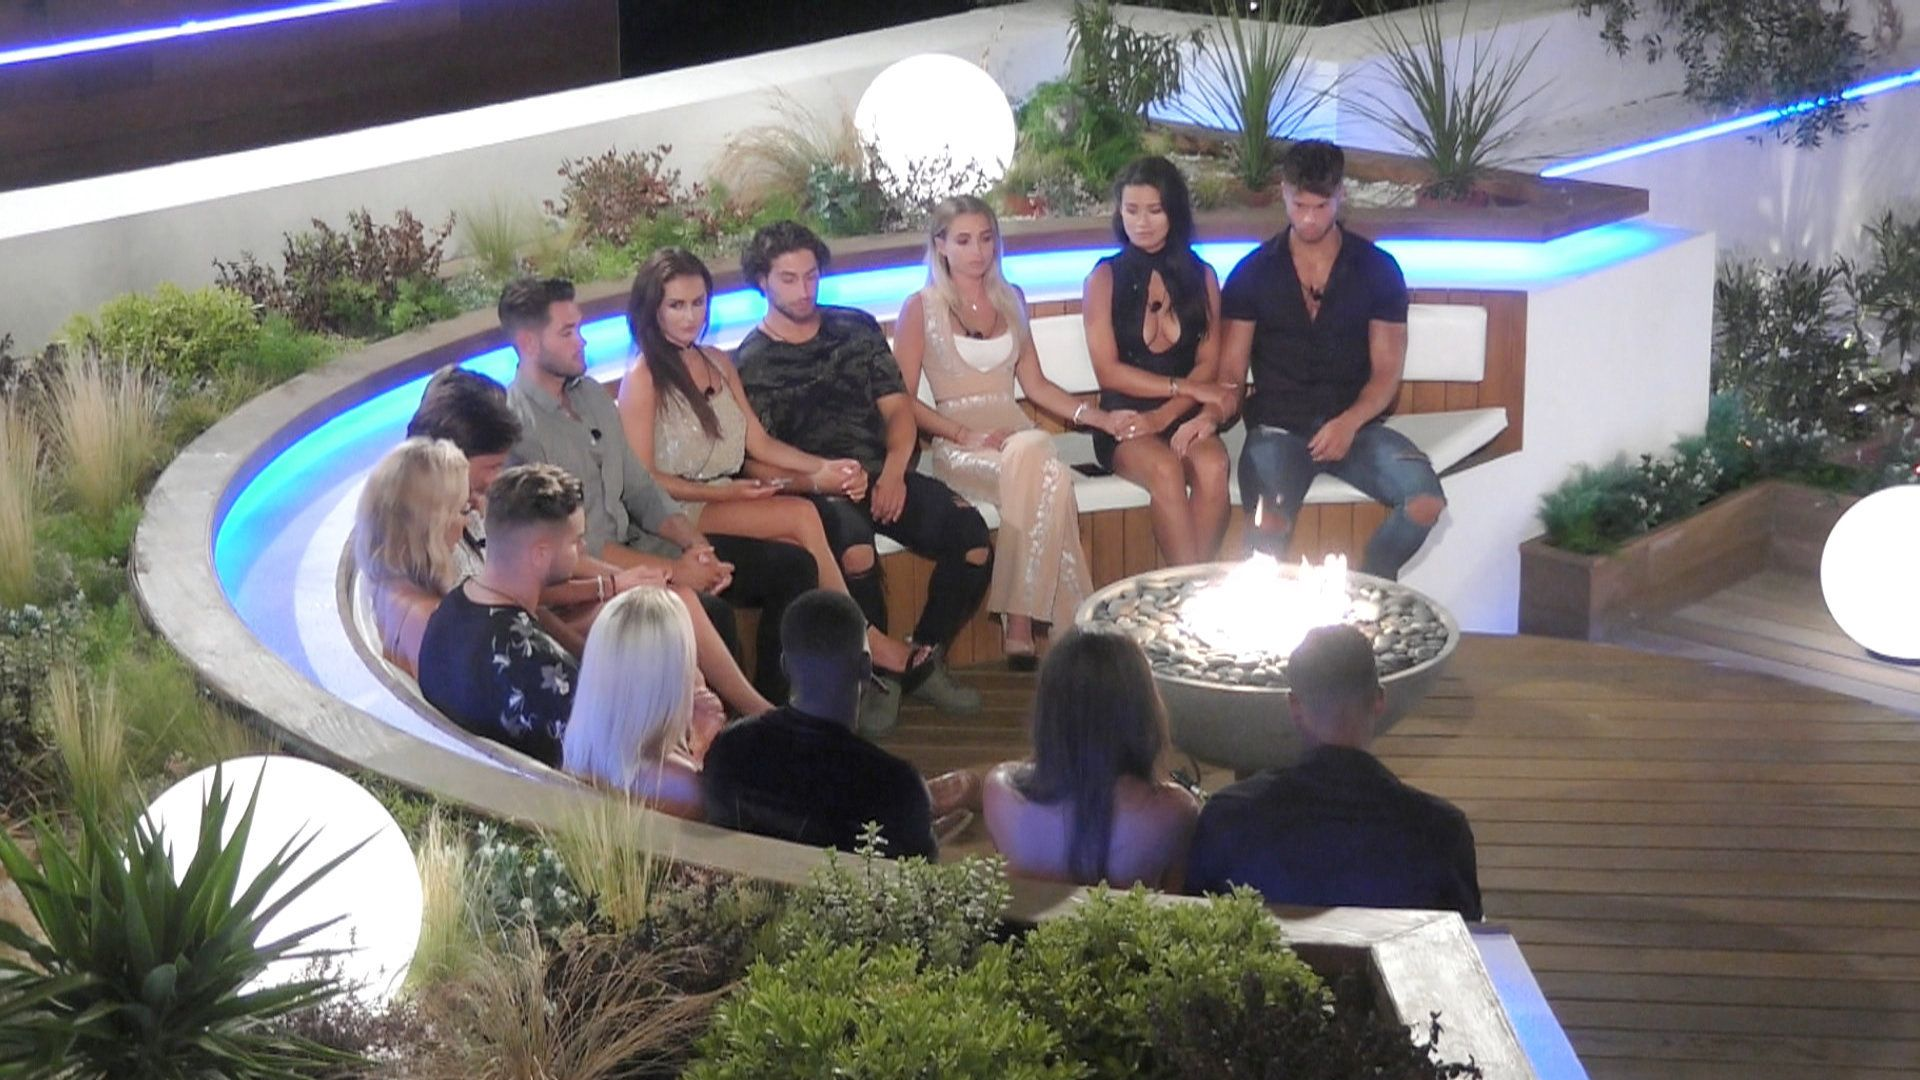 'Love Island' Shock As One Long-Term Contestant Is Dumped From The